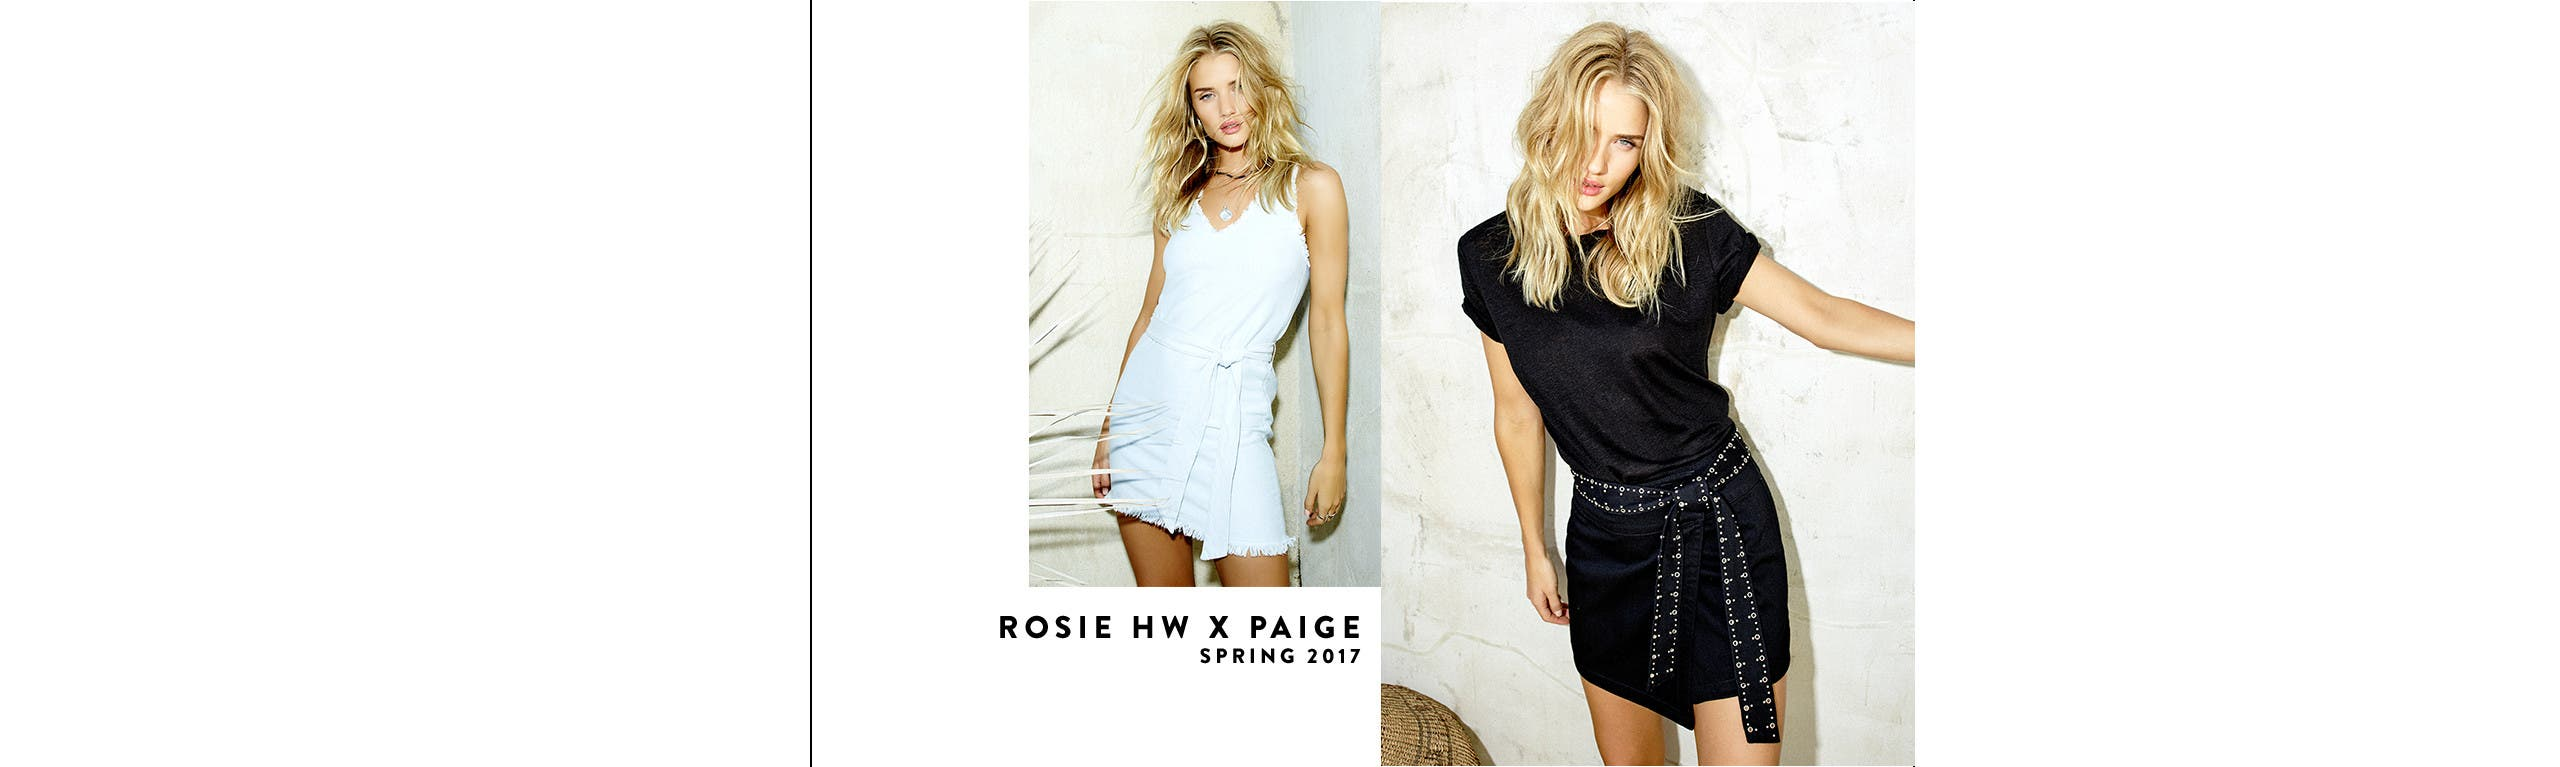 Rosie Huntington-Whiteley and PAIGE spring 2017.